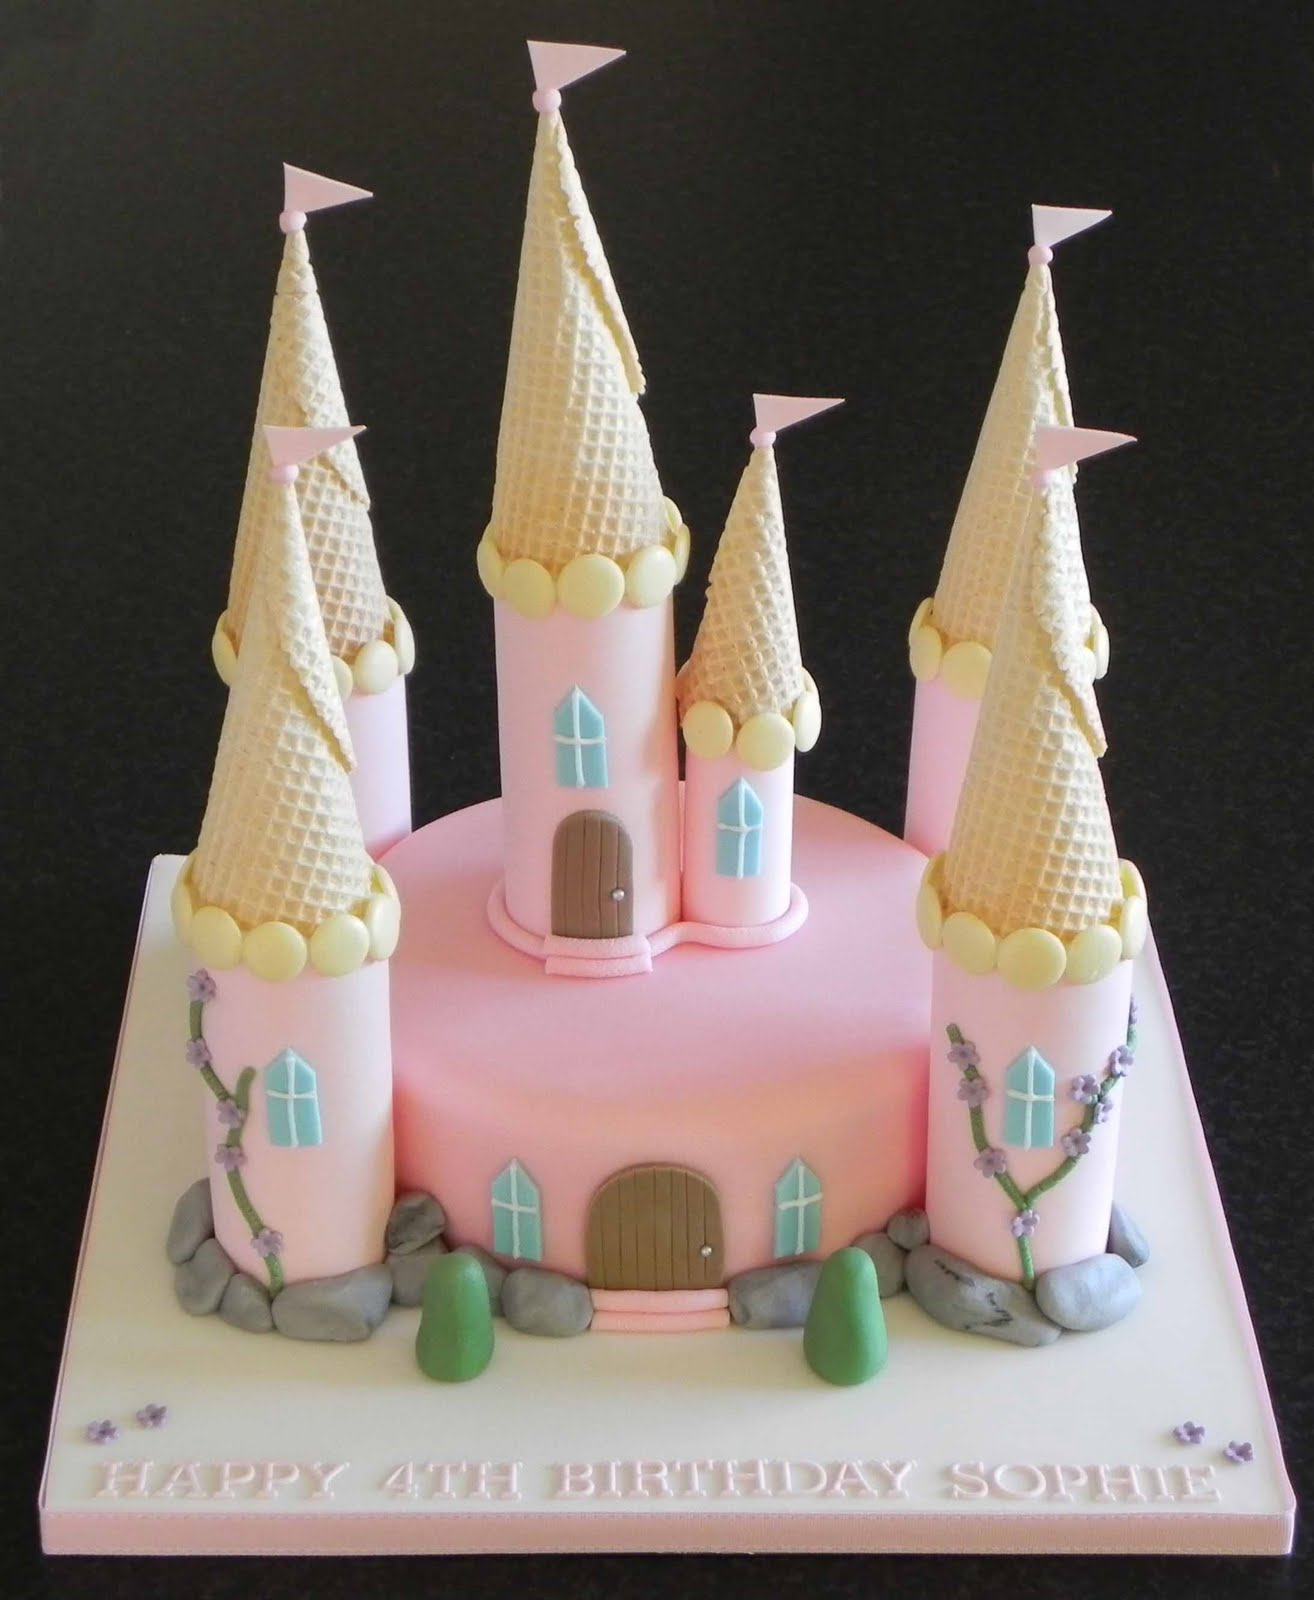 Easy Castle Cakes for Girls http://cakebylisaprice.blogspot.com/2010/11/princess-castle-cake.html